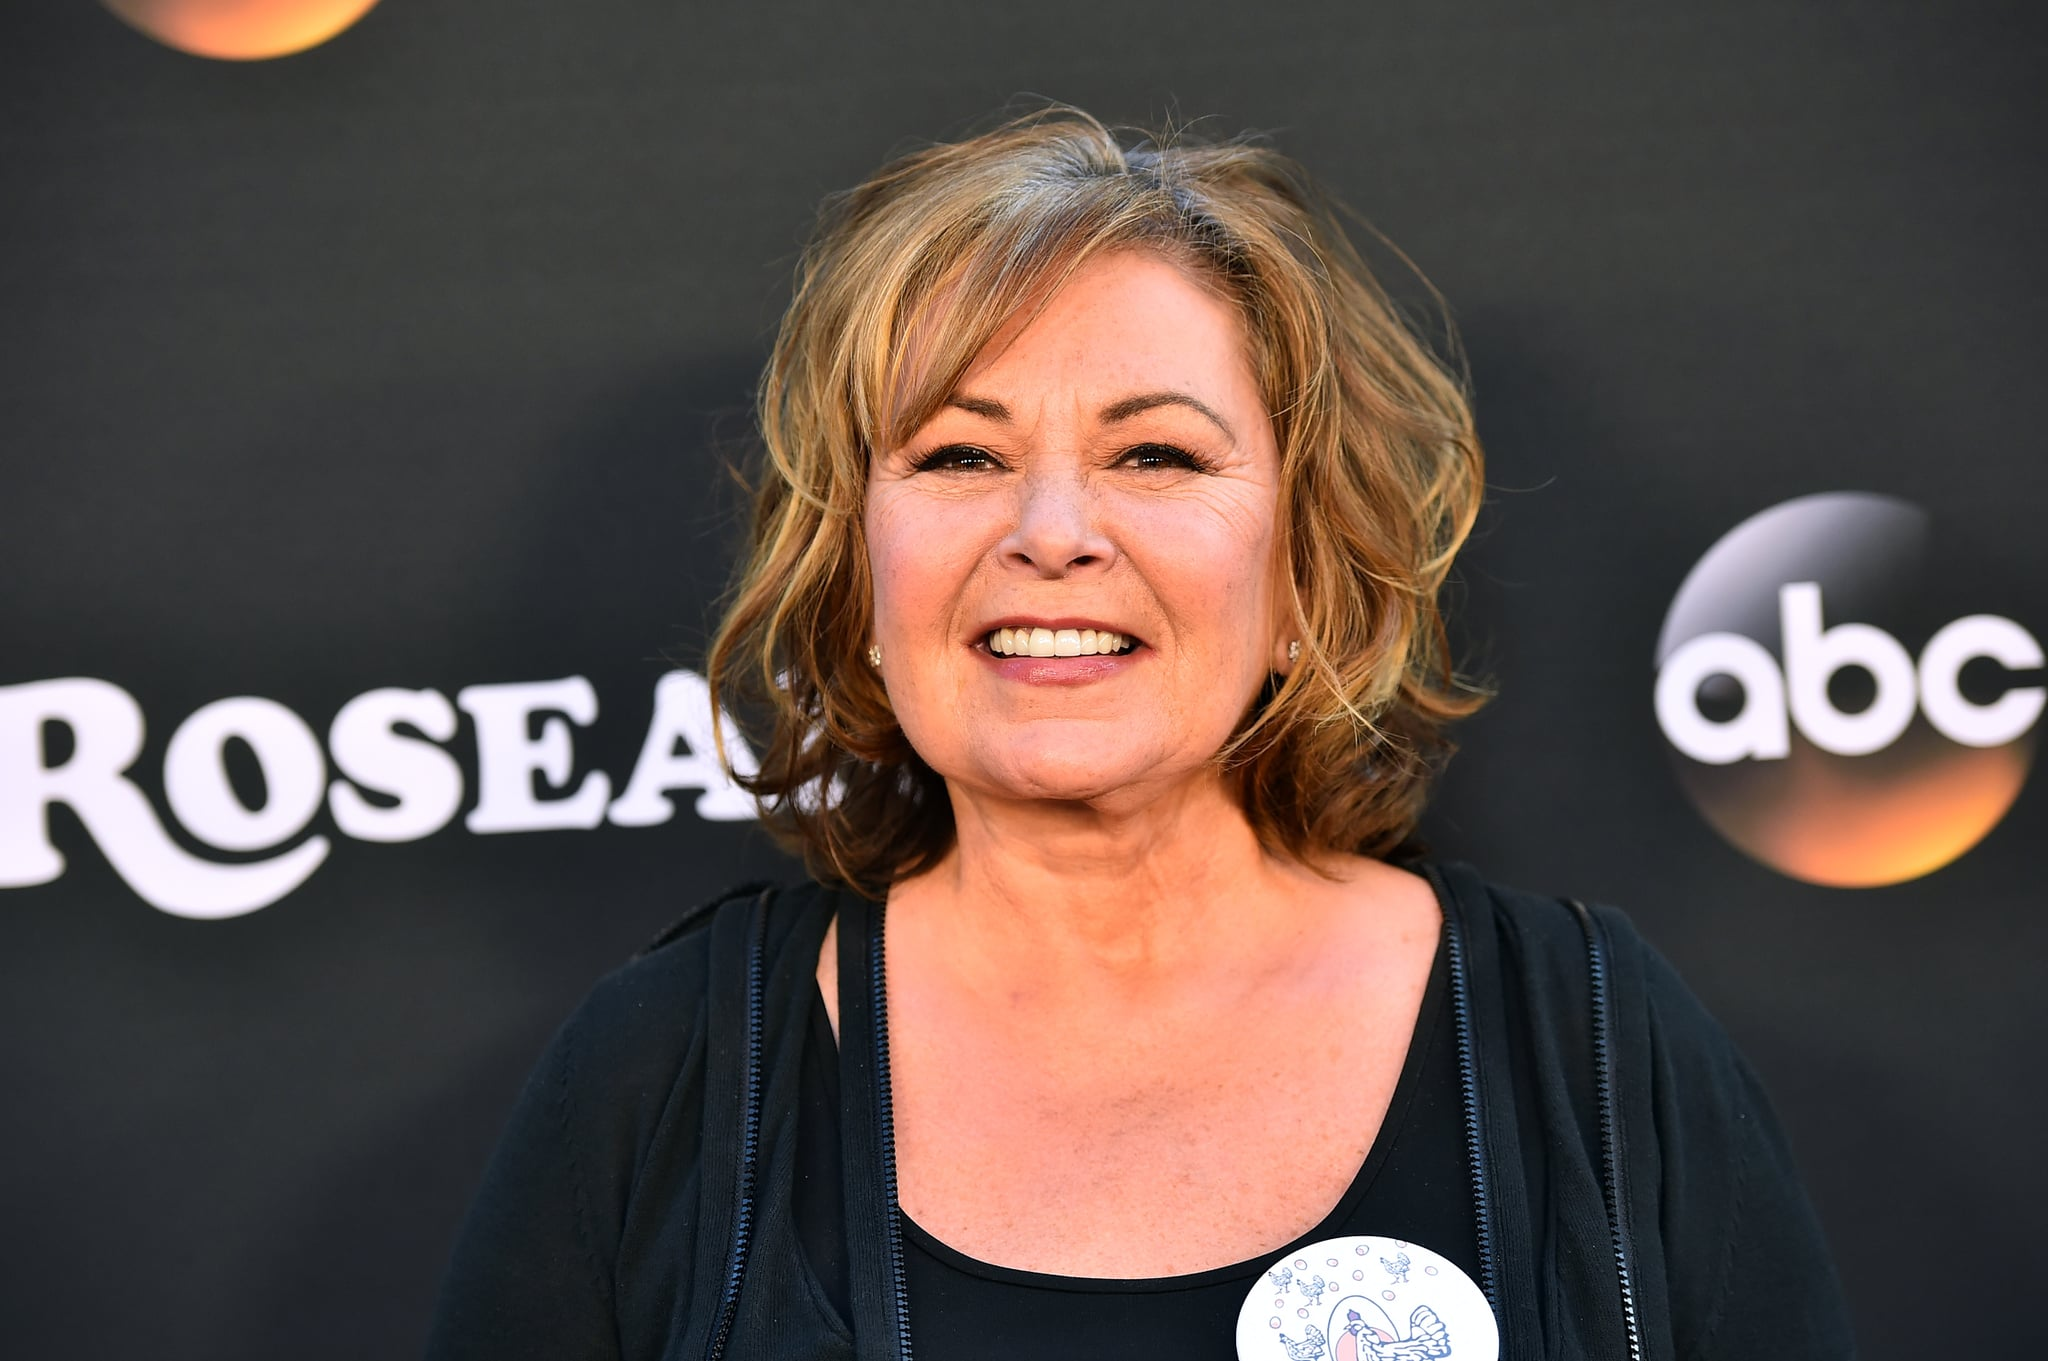 BURBANK, CA - MARCH 23:  Roseanne Barr attends the premiere of ABC's